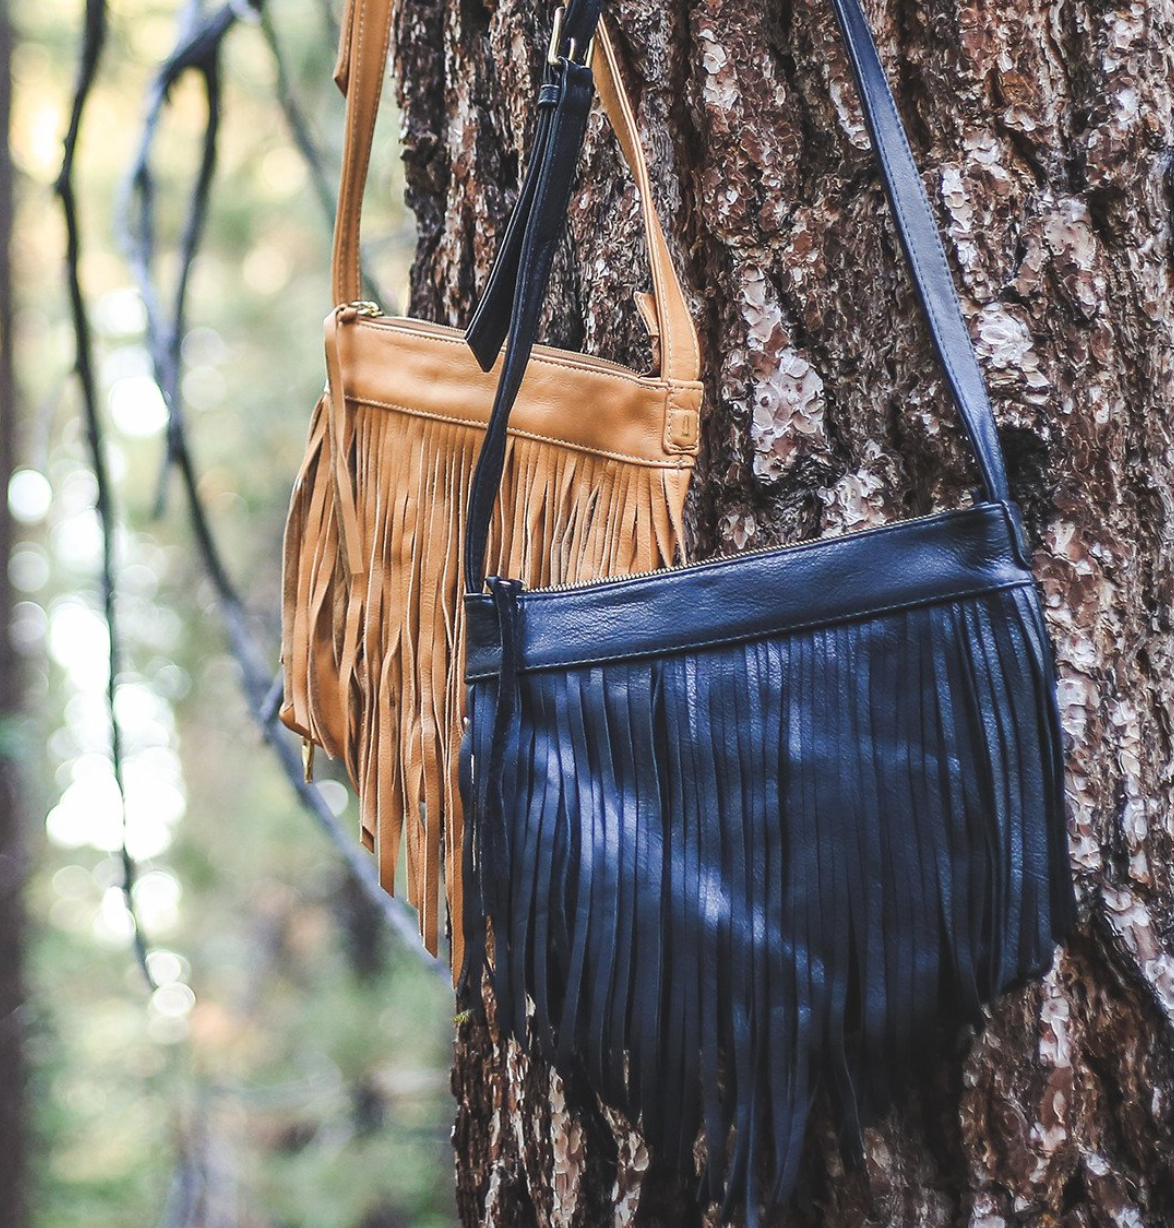 Taos Fringe Crossbody, Coronado Leather, $349 - In colors black, nude and saddle, this bohemian-chic bag is especially ideal for concealed carry because of its key-locking CCW zipper pocket and its ballistic Nylon lining.  Photo Credit: CoronodoLeather.com